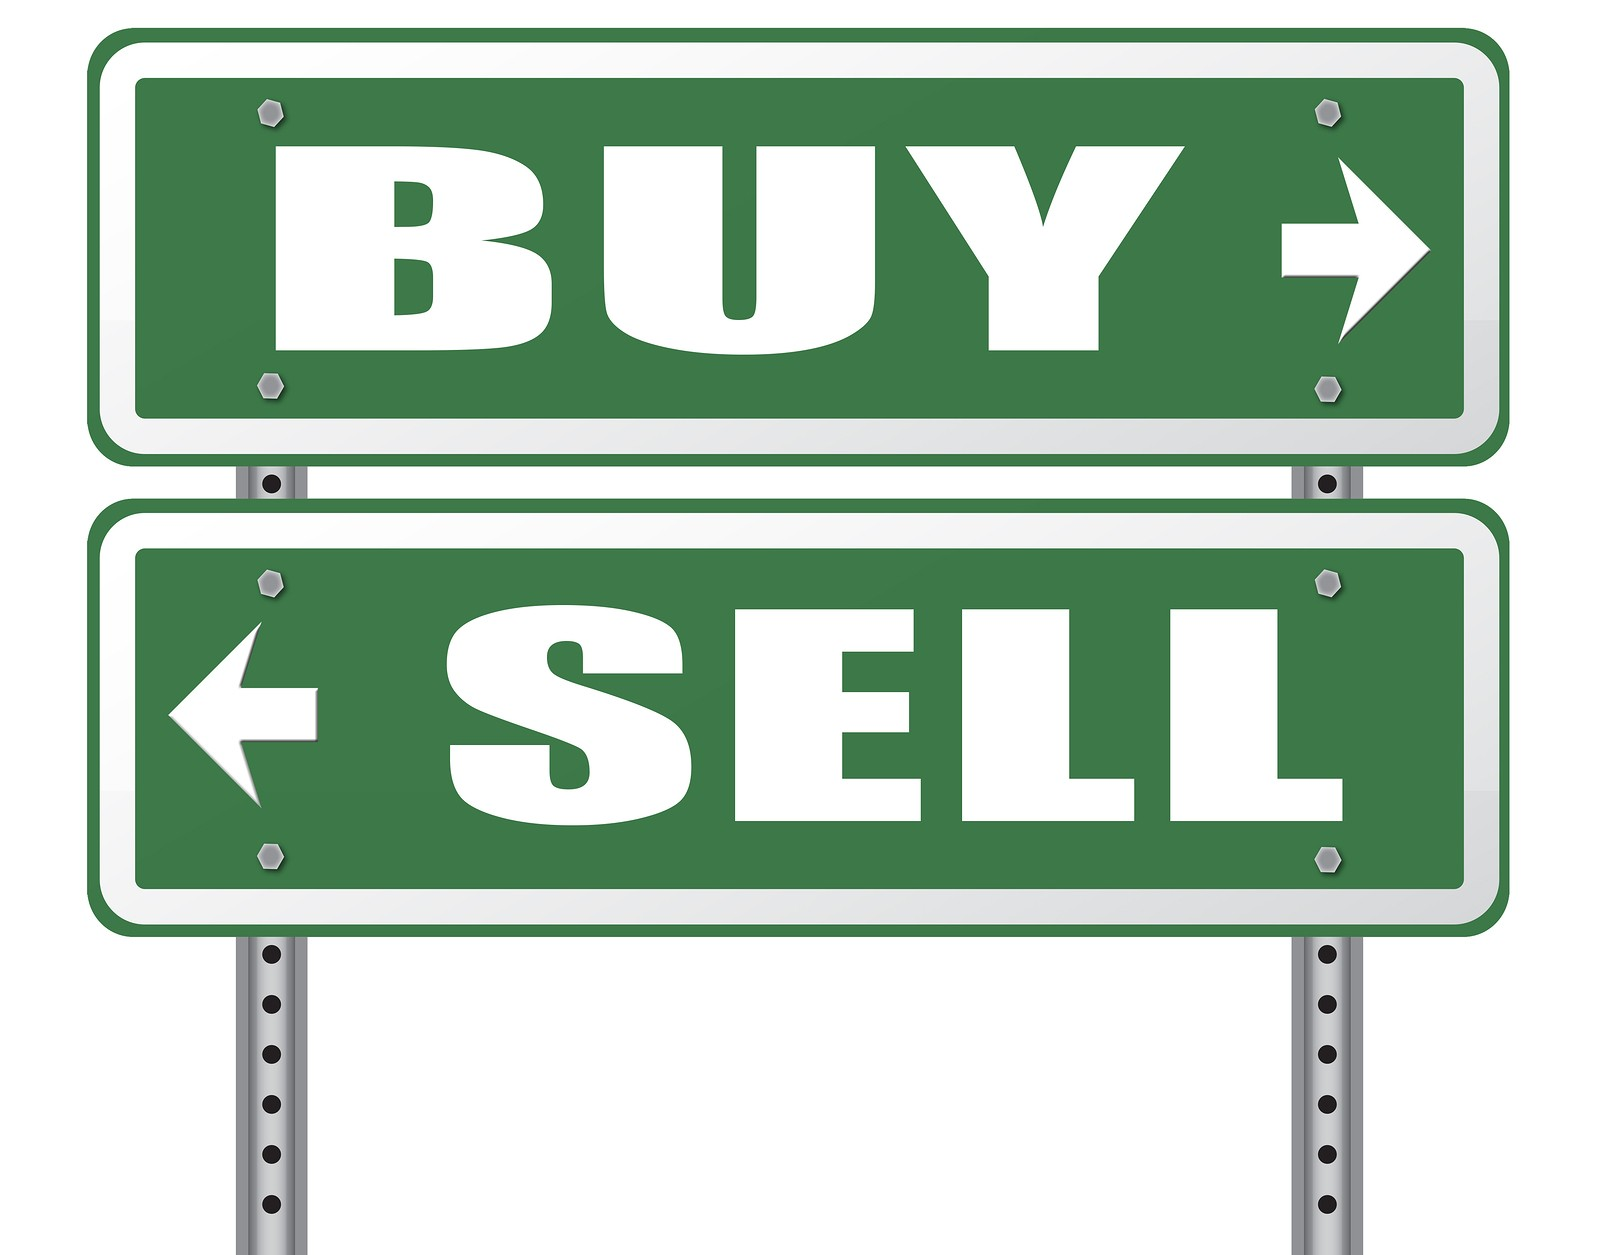 uy or sell market share buying or selling on stock market exchange international trade road sign text